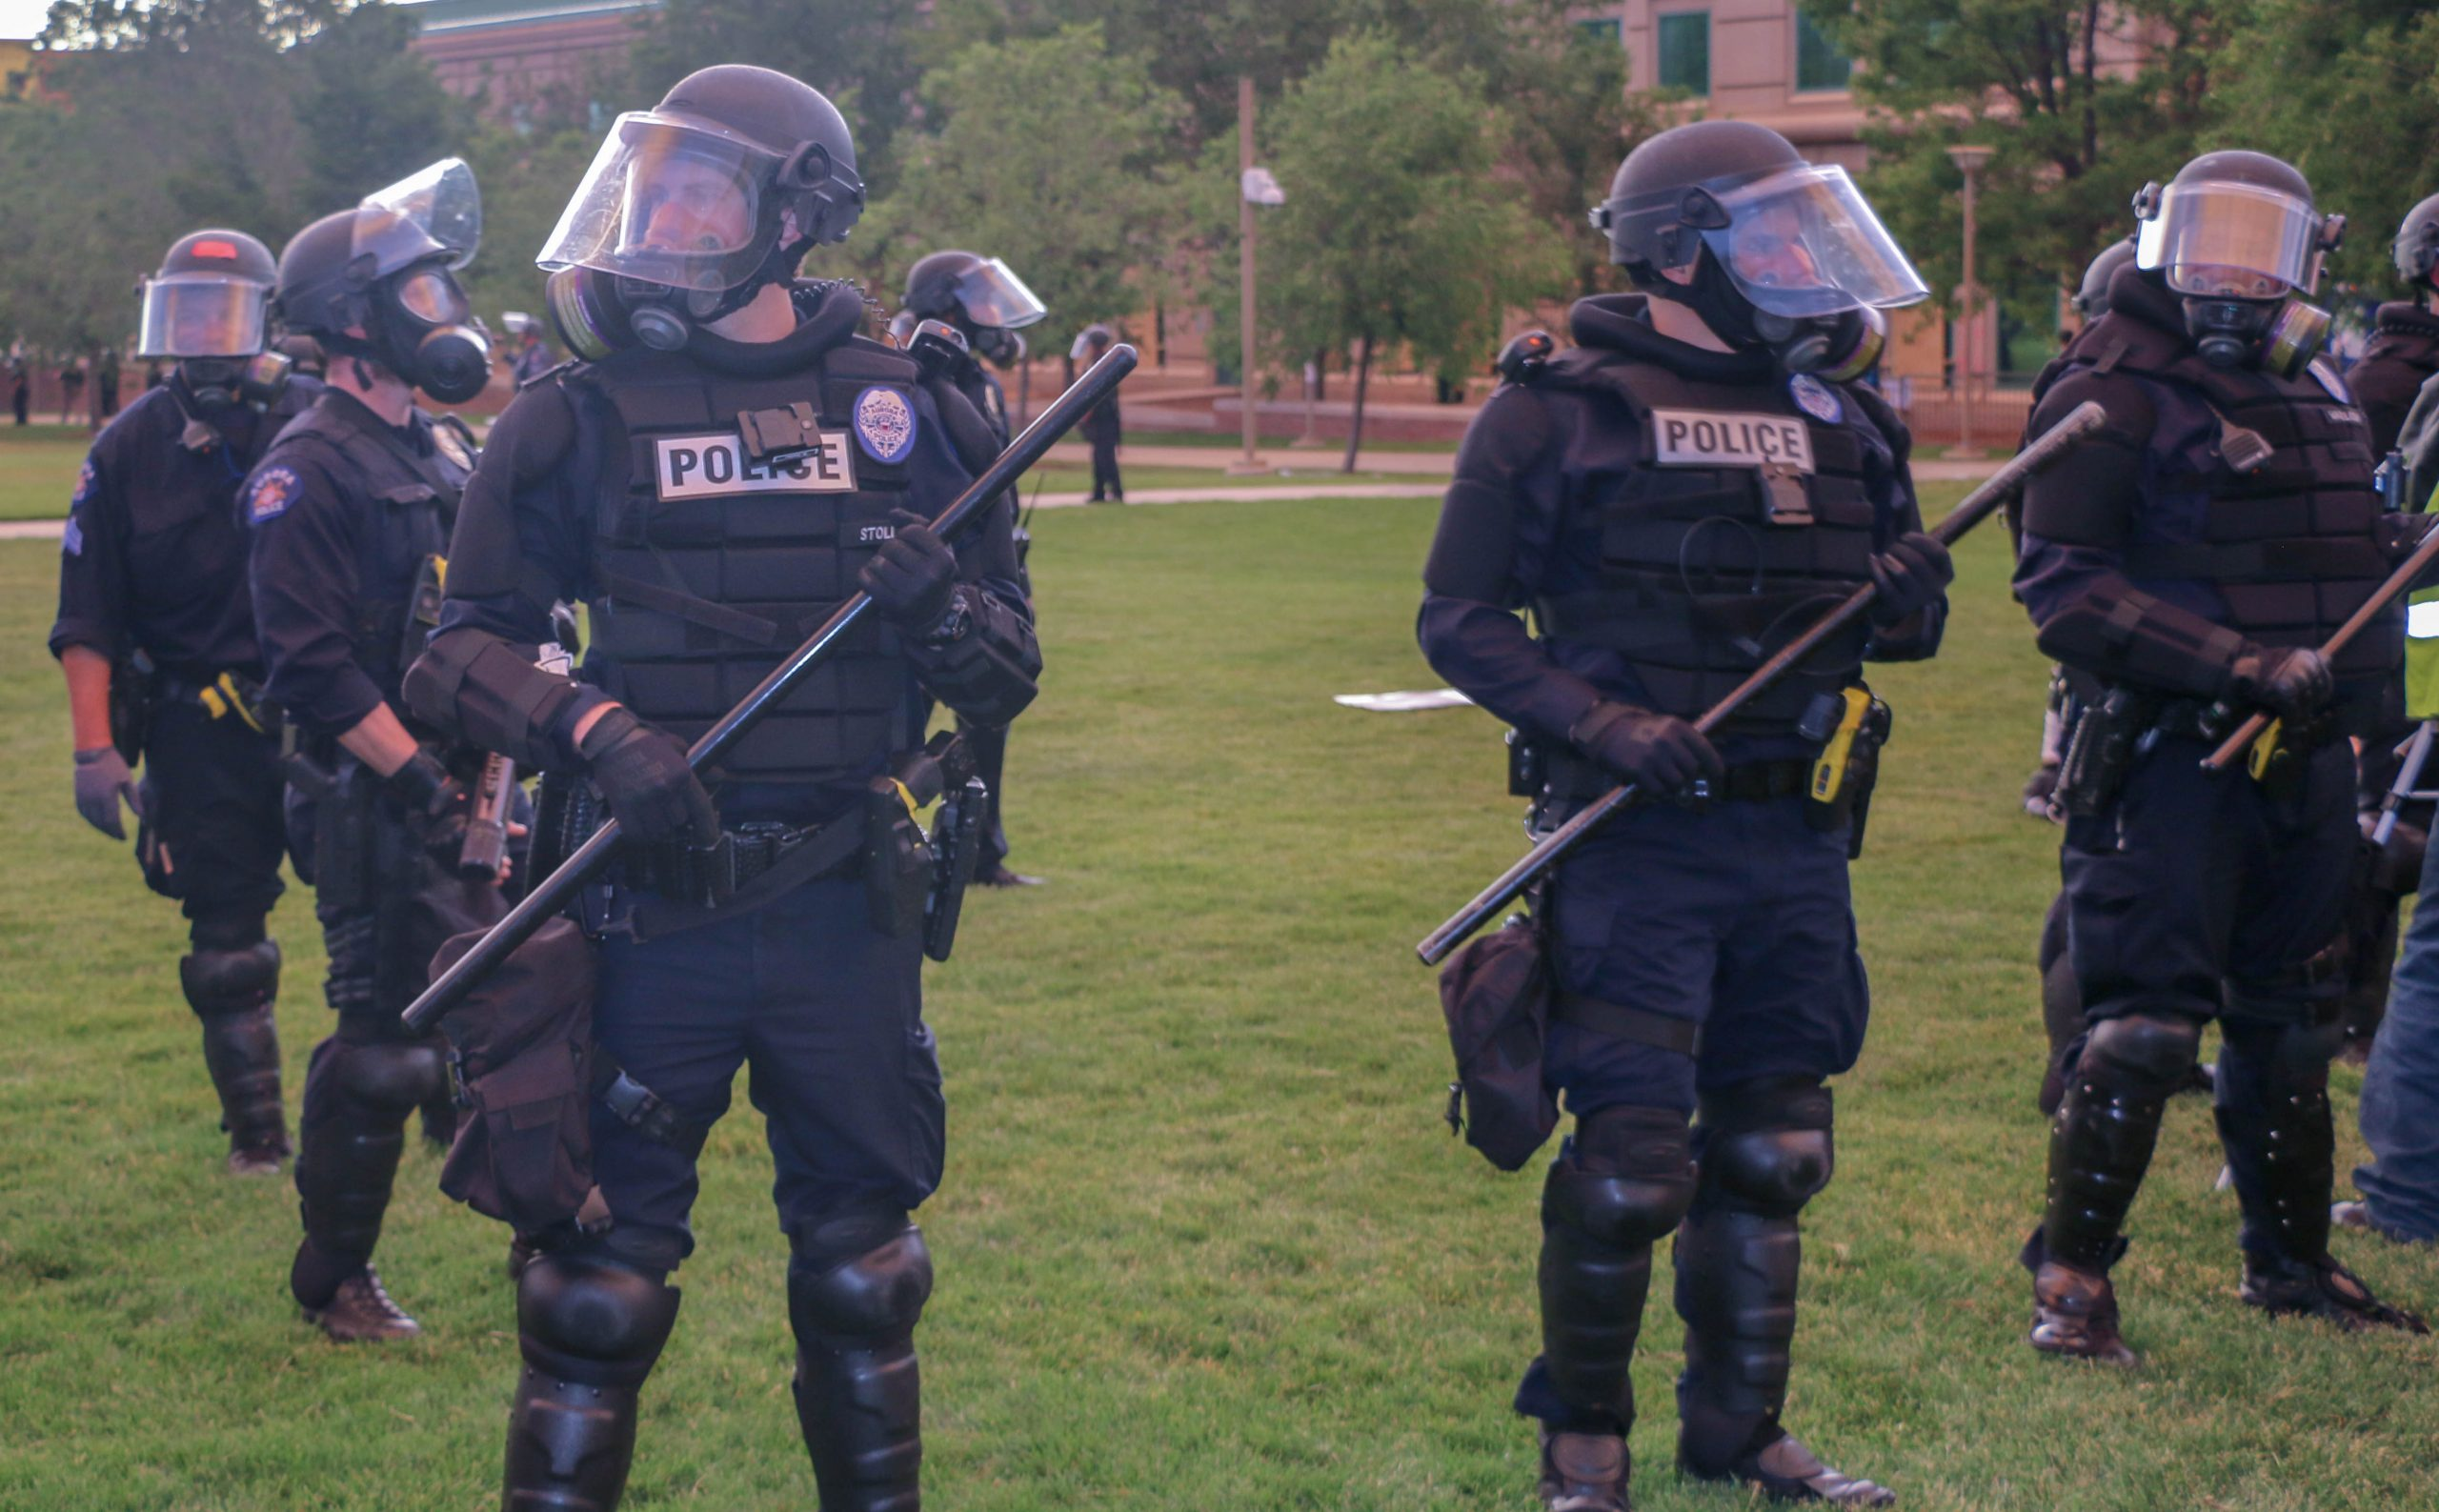 Pro-police too often means pro-entitlement